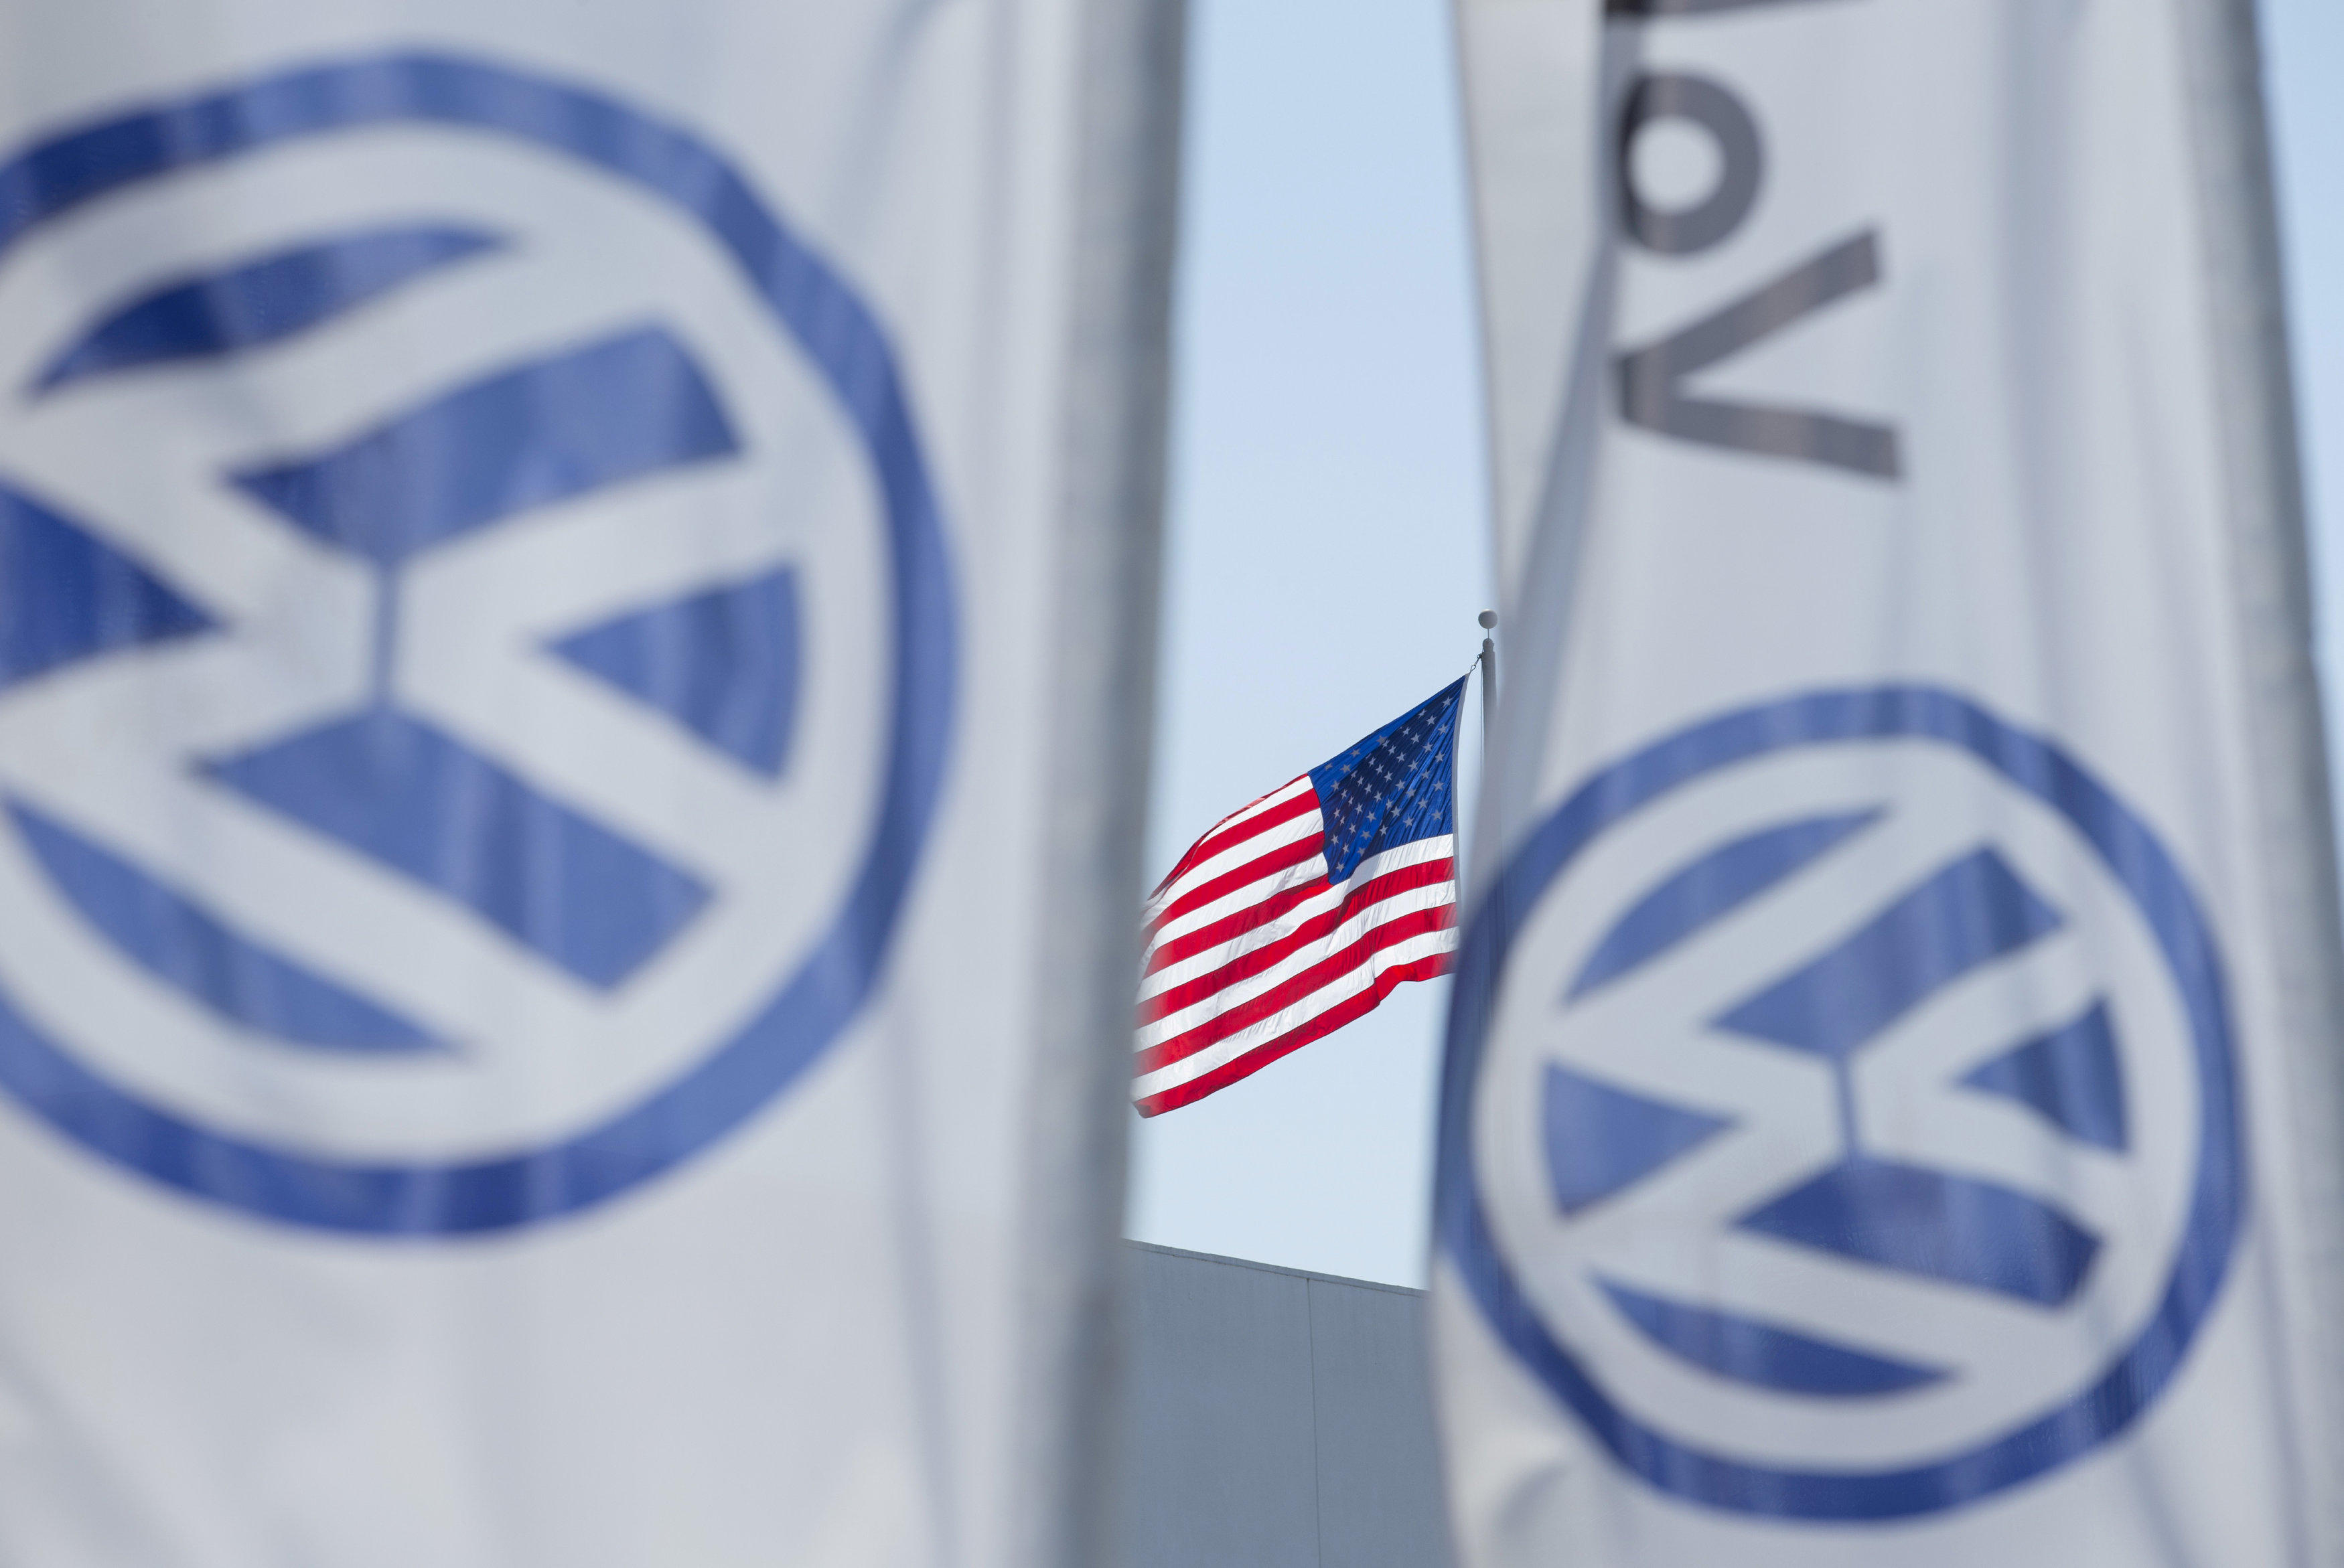 VW senior manager sentenced to 7 years in prison